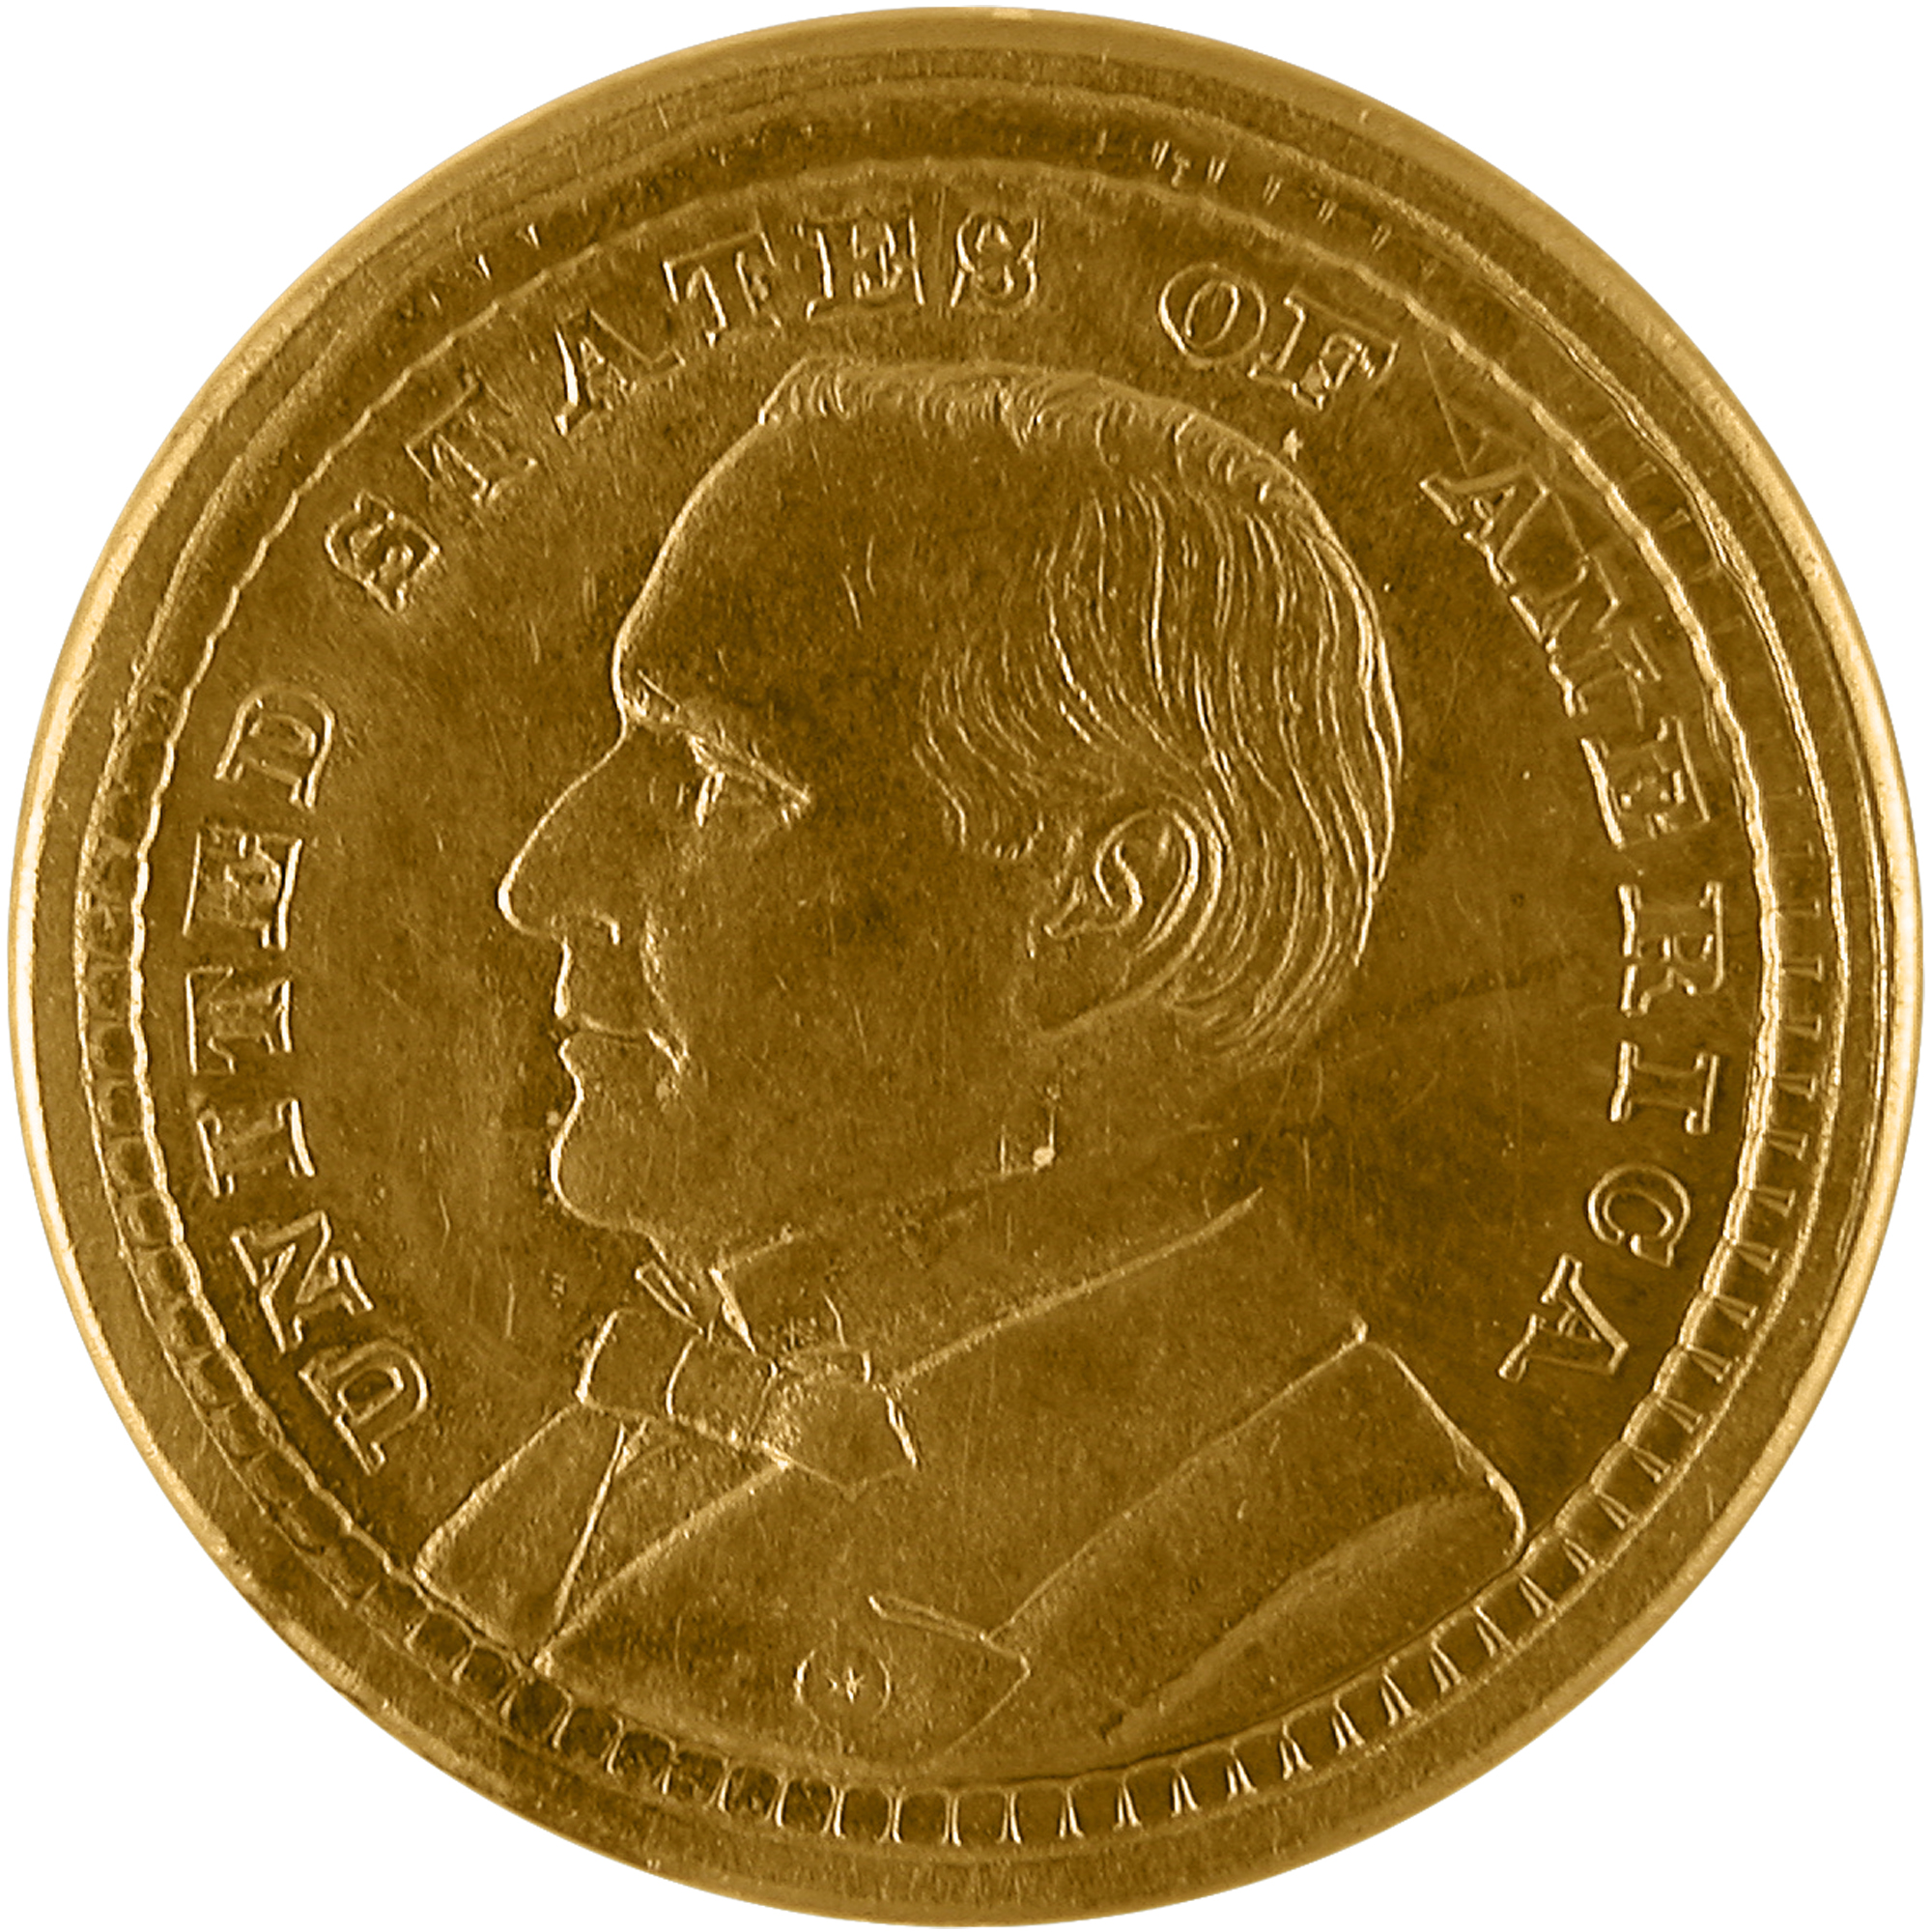 1903 Louisiana Purchase Exposition William Mckinley Commemorative Gold One Dollar Coin Obverse